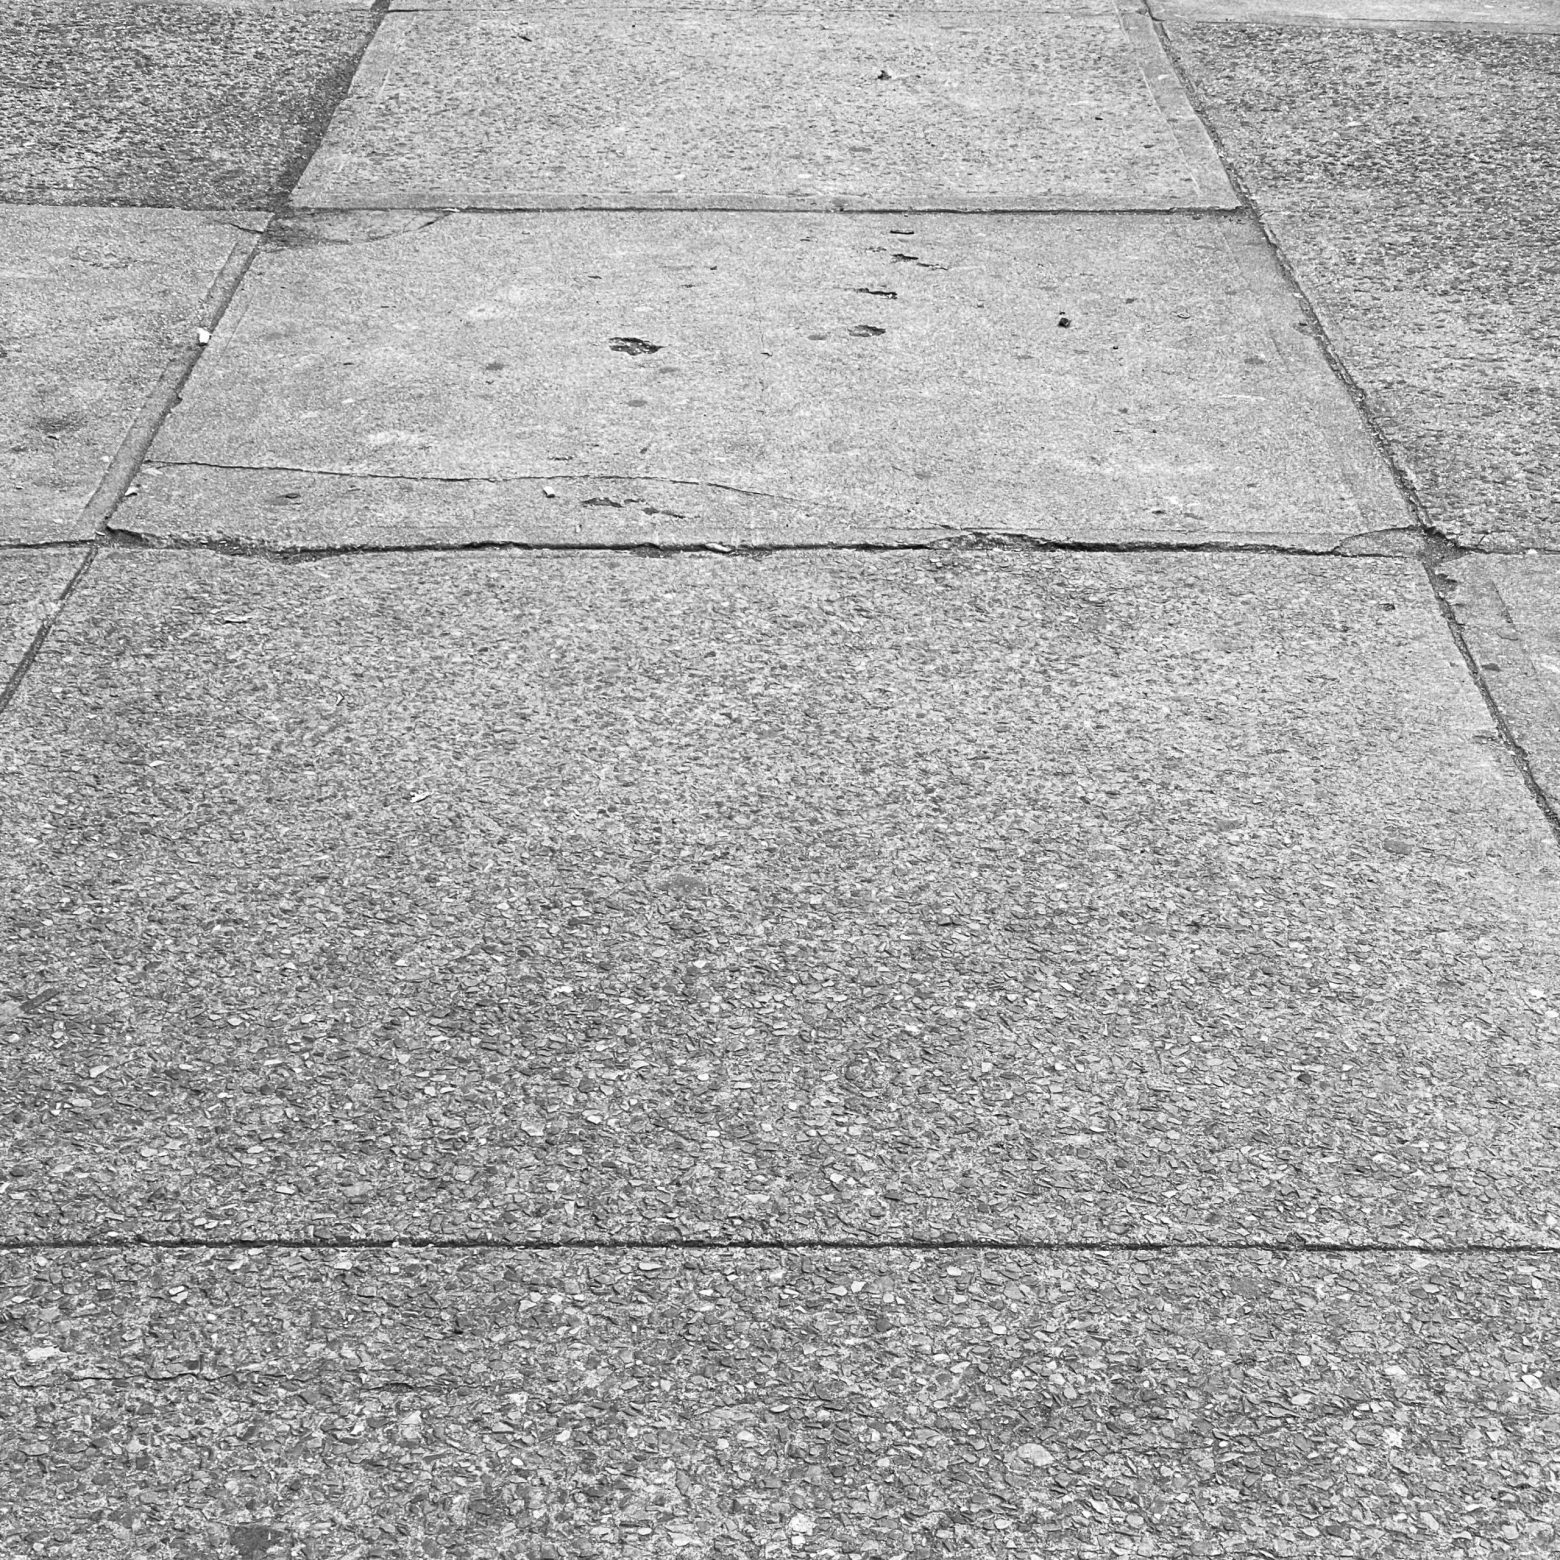 Social distancing: let the sidewalks be your guide